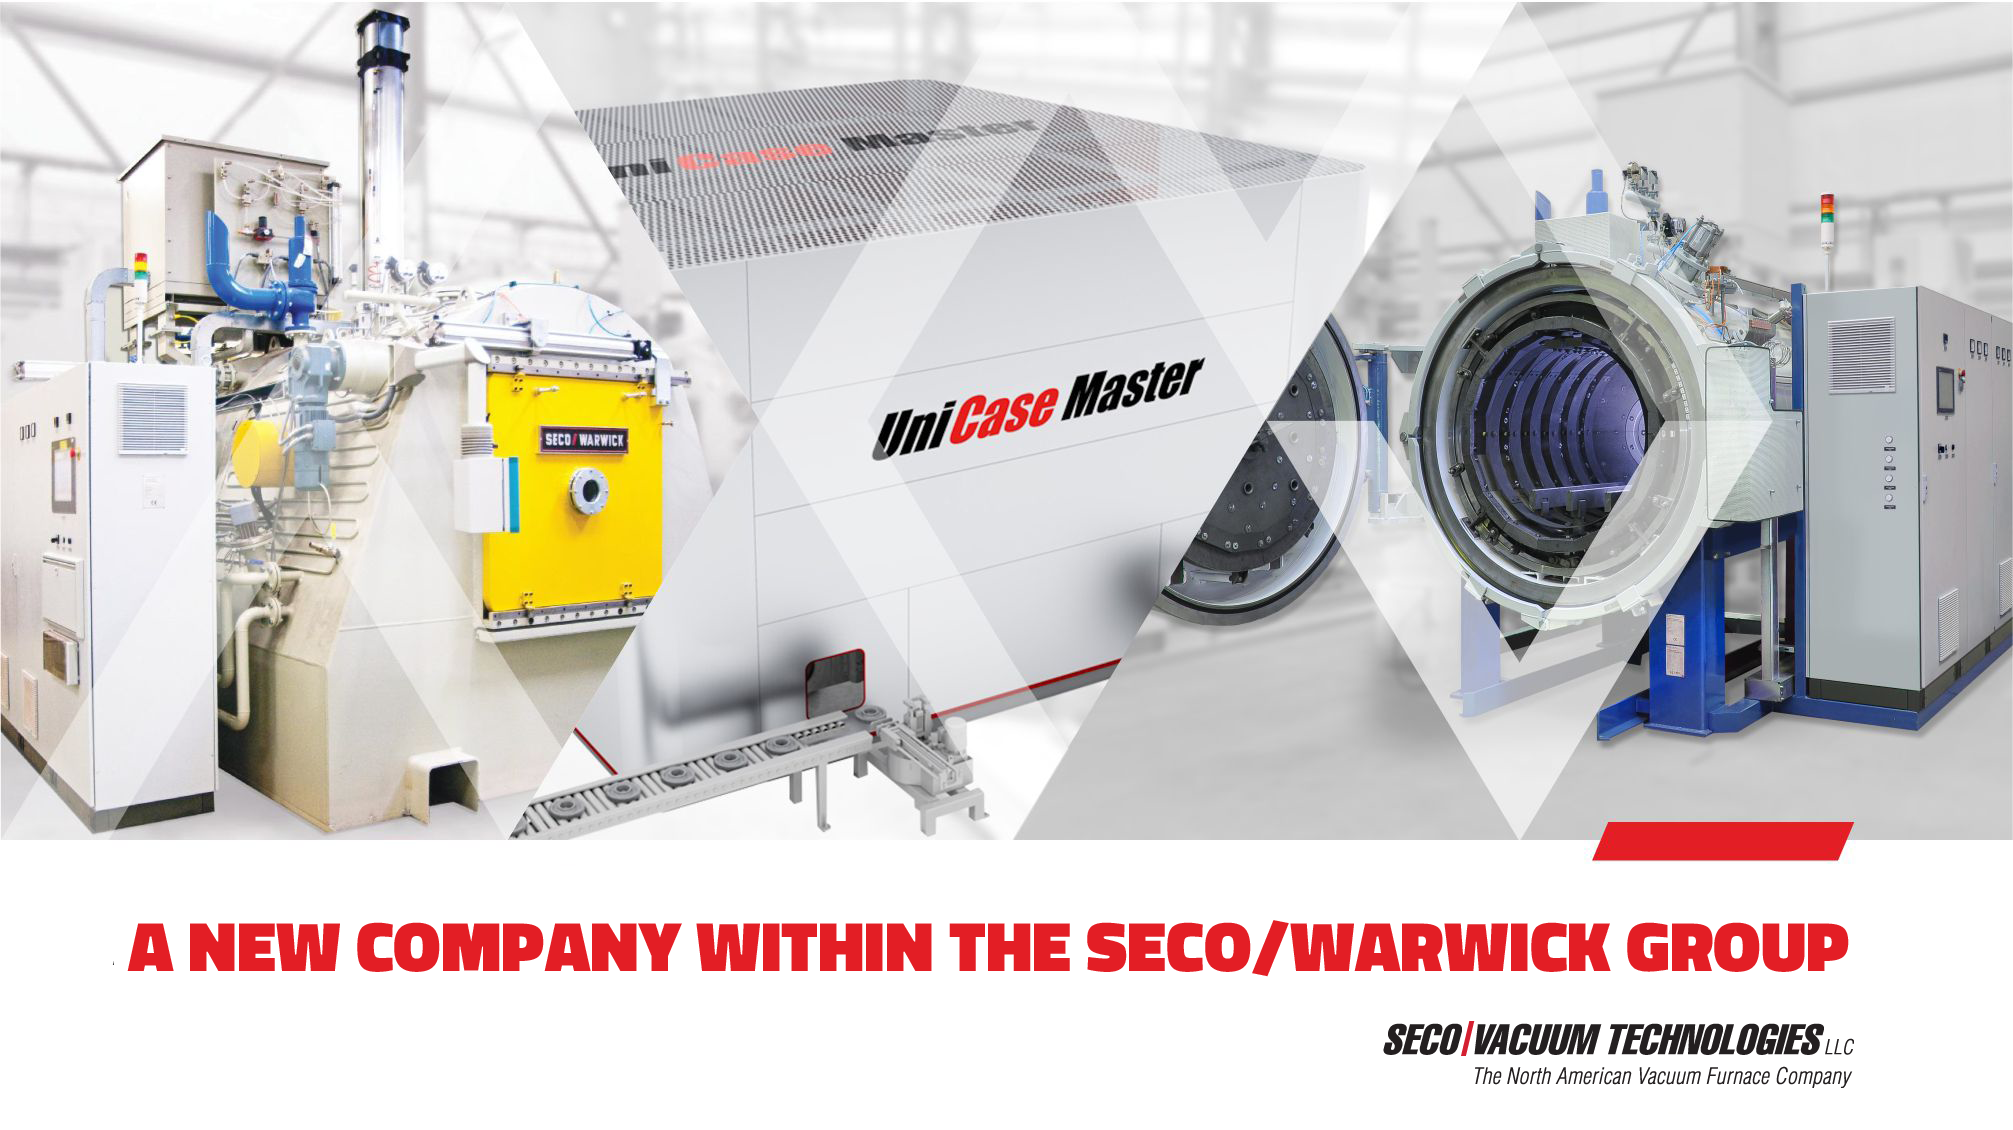 Introducing SECO/Vacuum Technologies, the new North American Vacuum Furnace Company